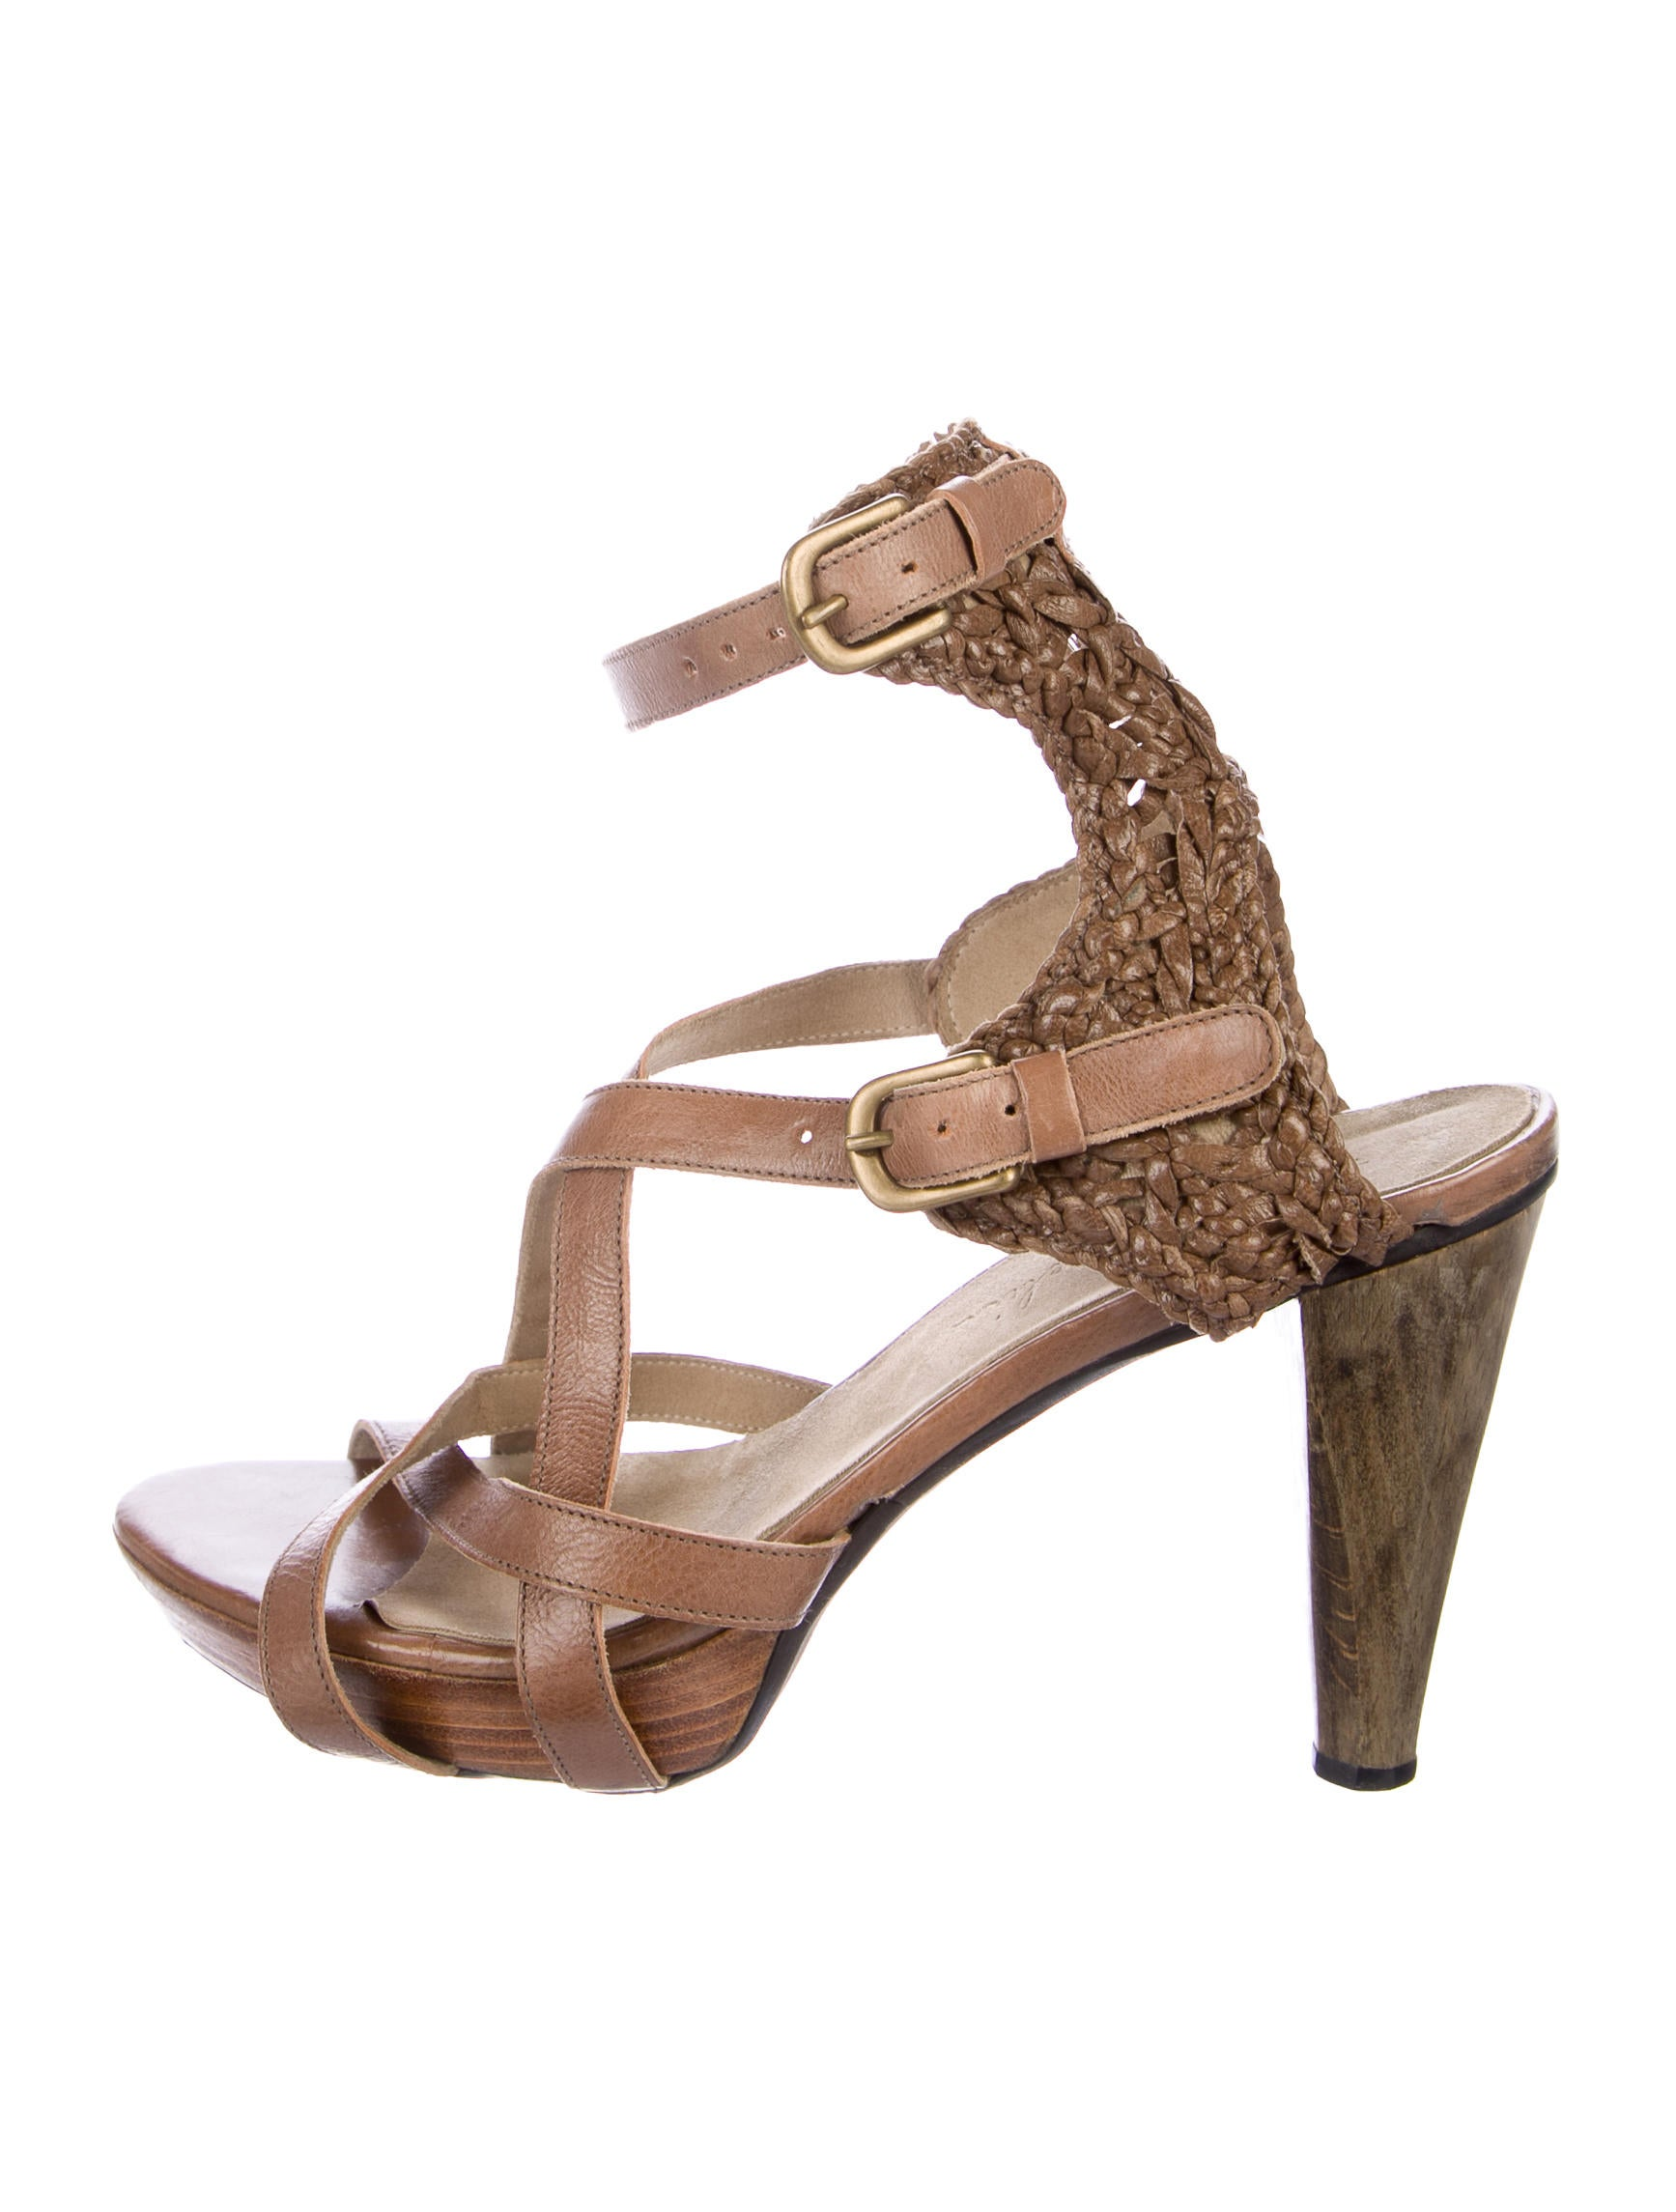 Henry Beguelin Leather Platform Sandals buy cheap hot sale clearance brand new unisex GNFLd